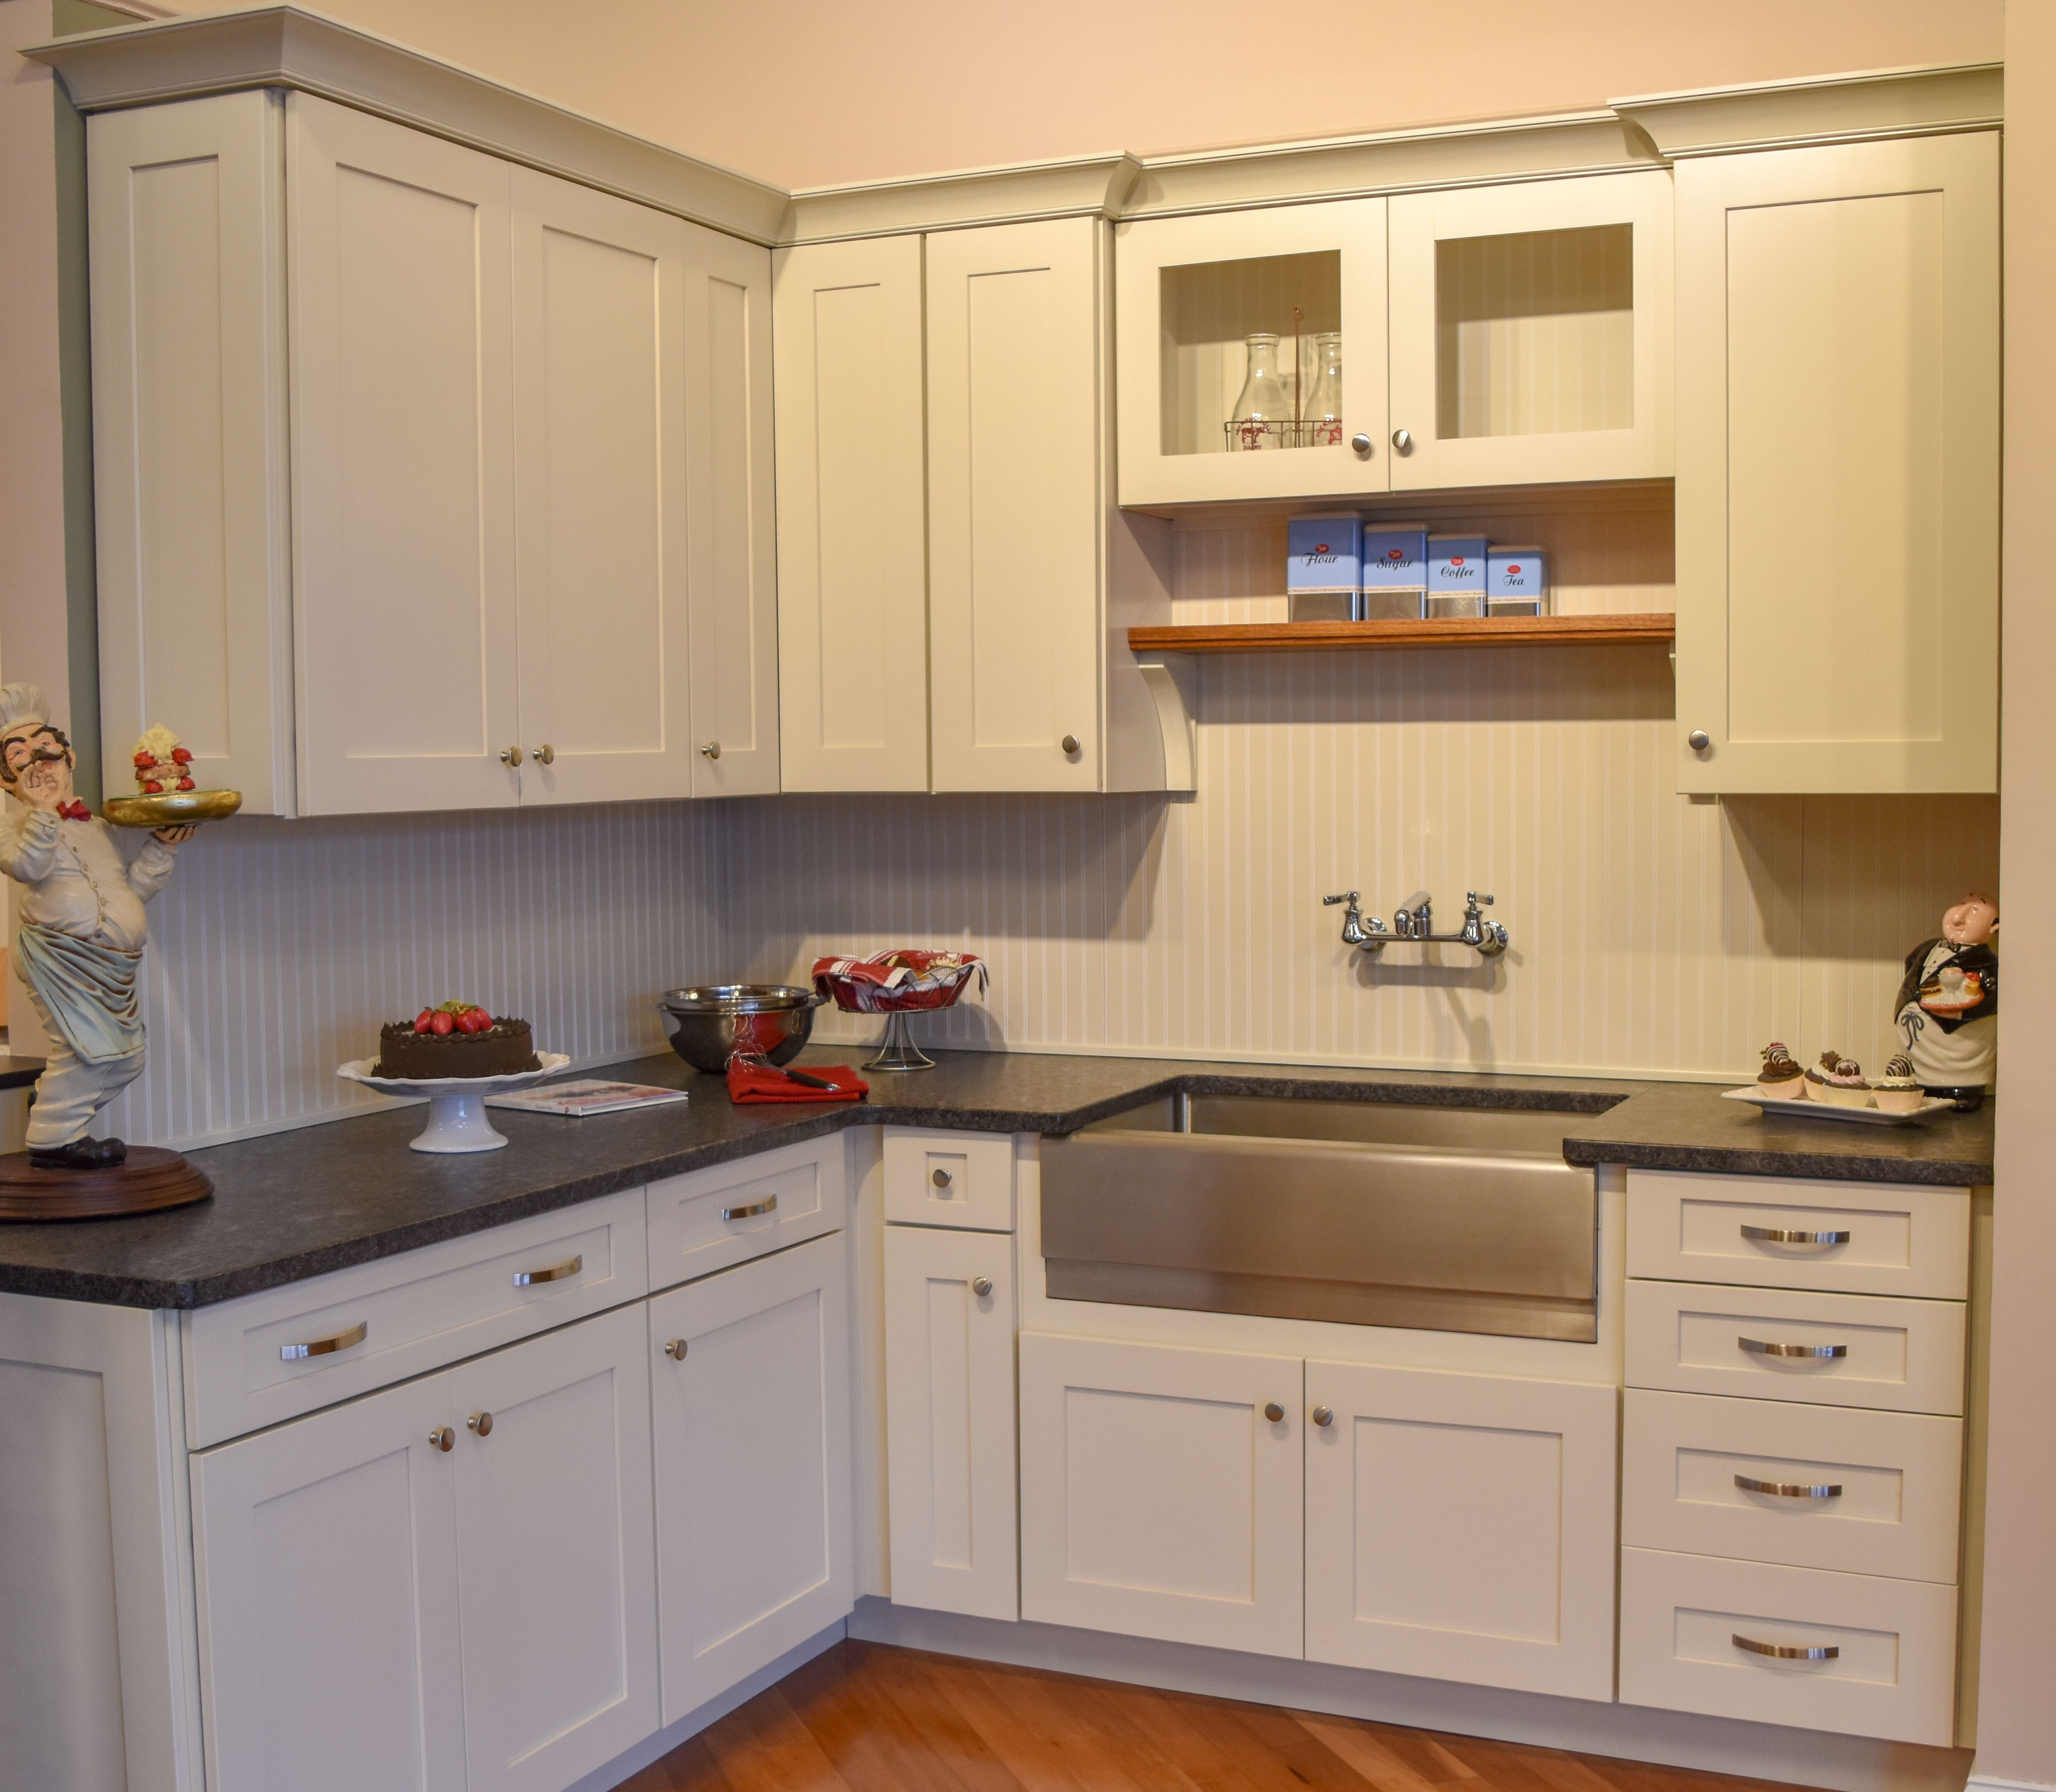 Marsh Furniture Summerfield Maple Cabinets In Linen Finish Leathered Granite Countertops Kitchen Remodel Kitchen Cabinets In Bathroom Kitchen Bathroom Remodel